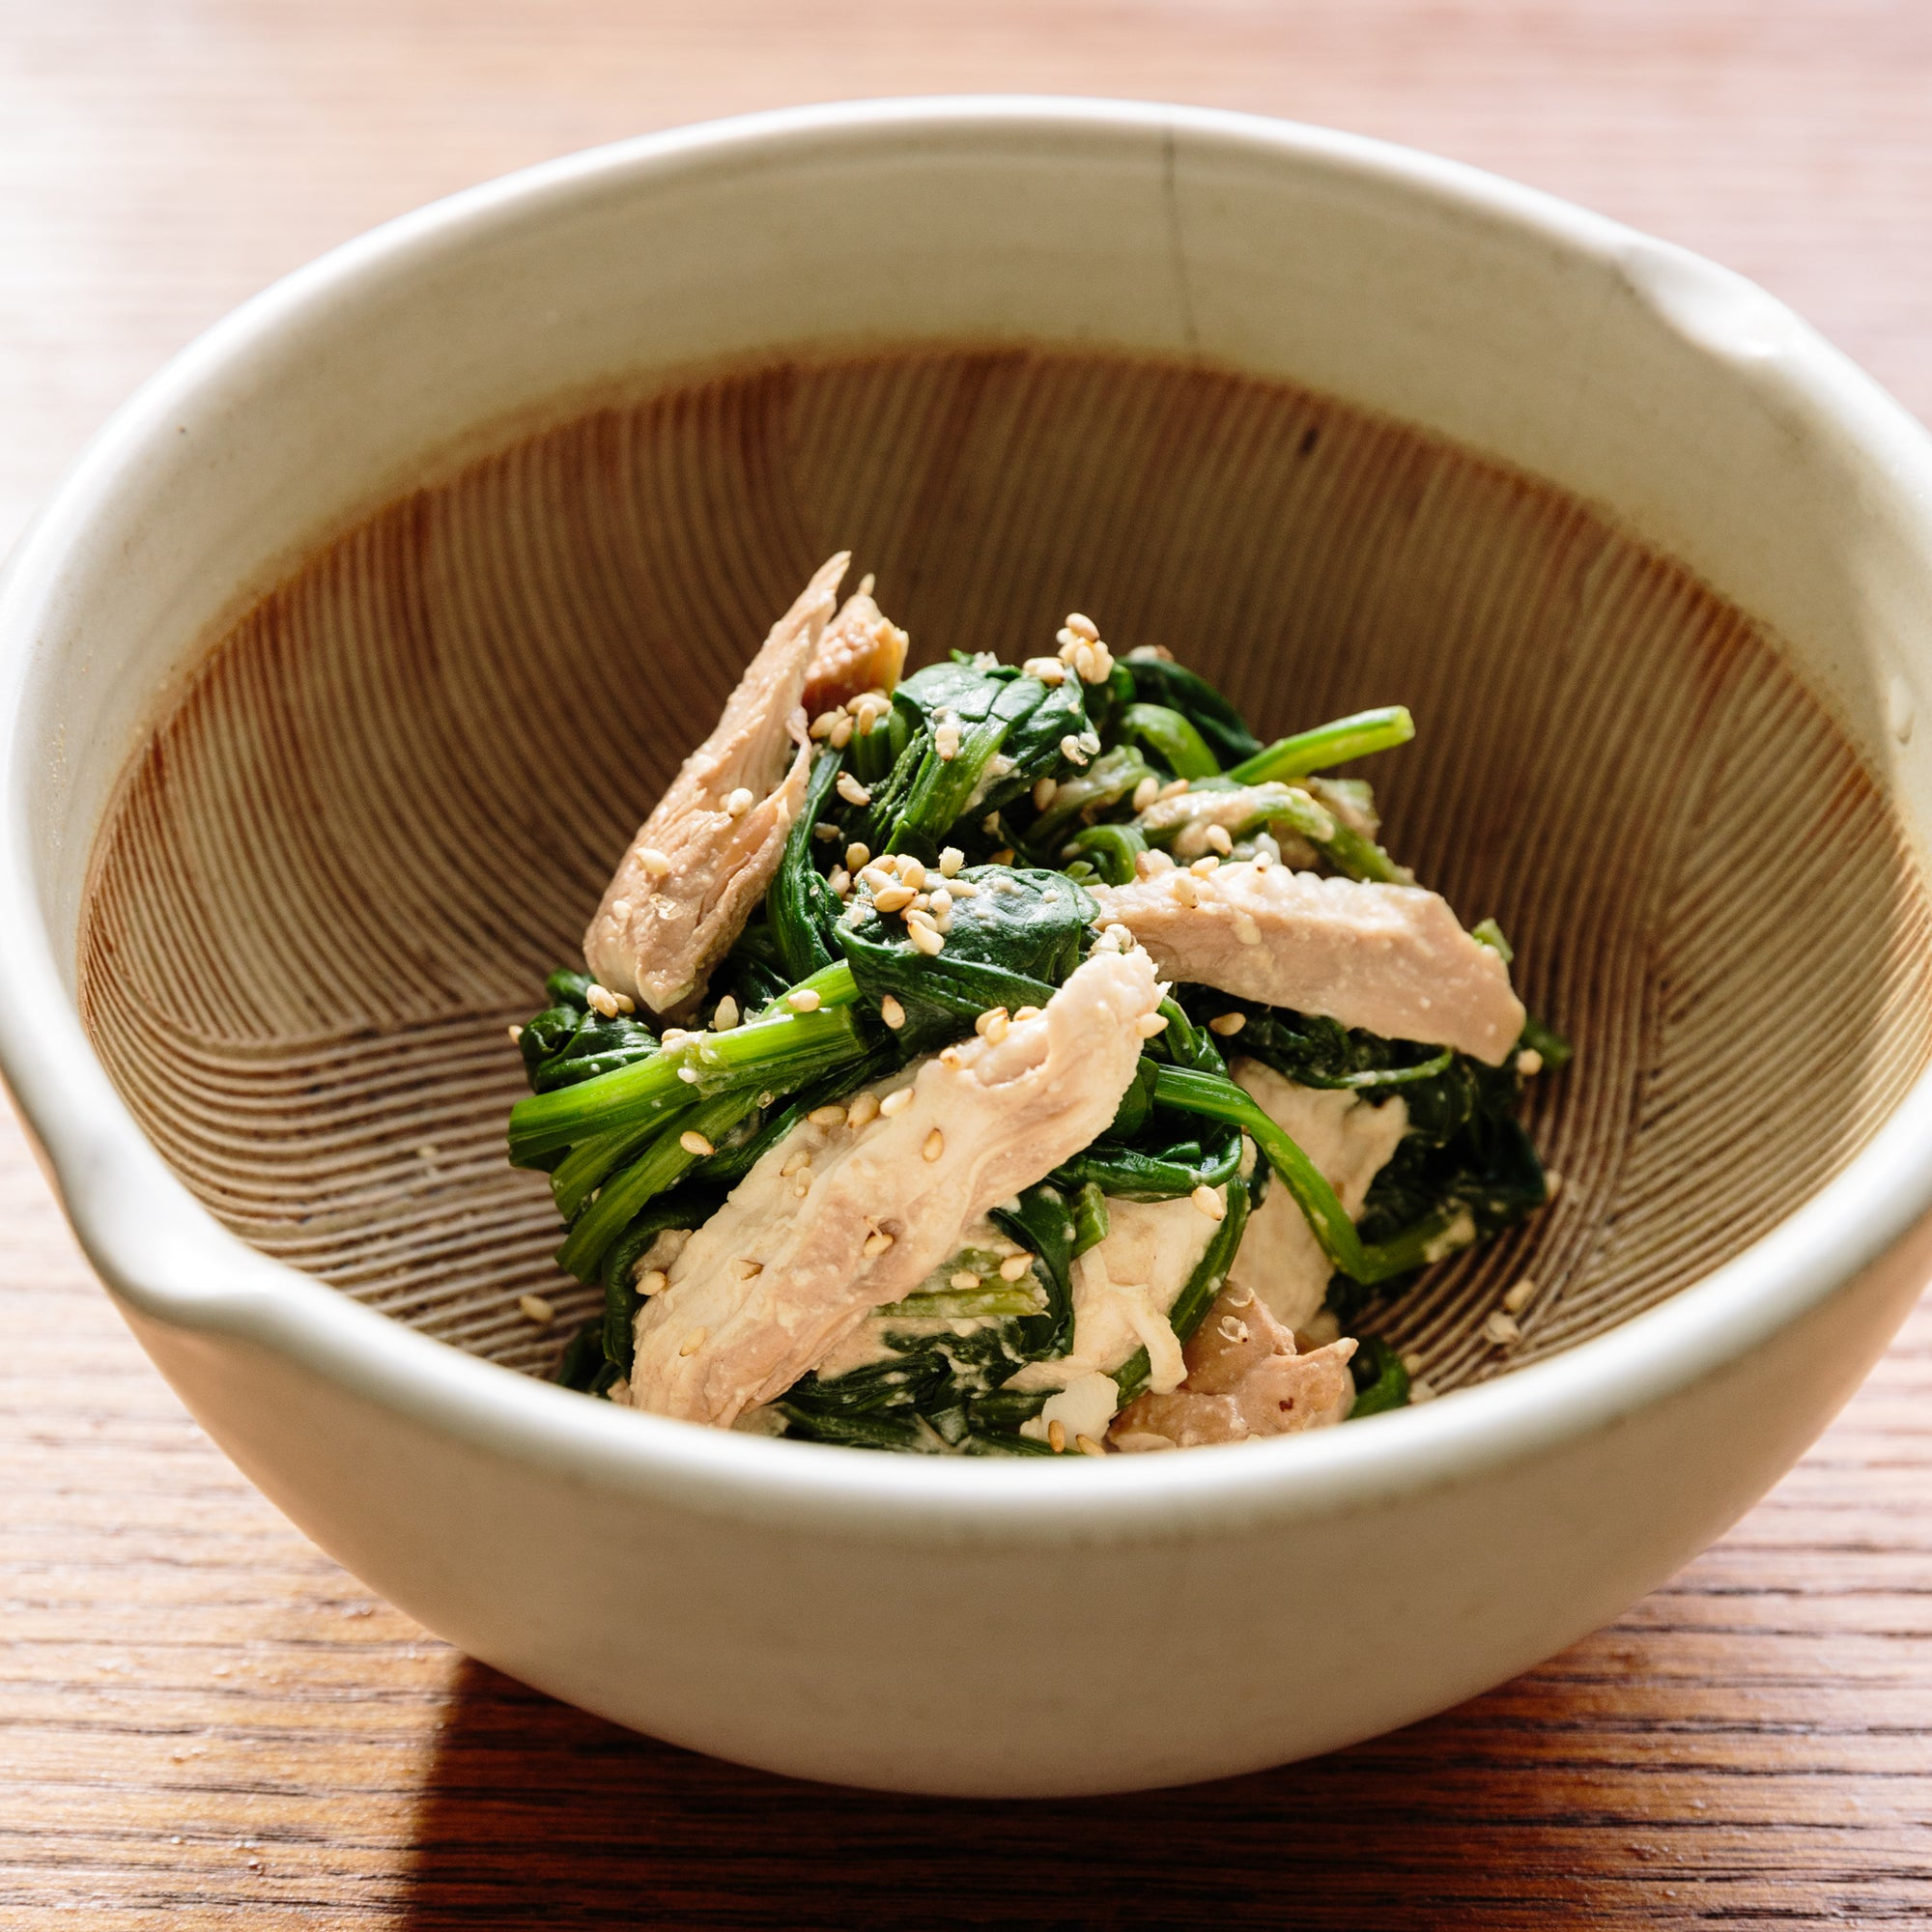 Turkey and Spinach Salad with Shira-ae